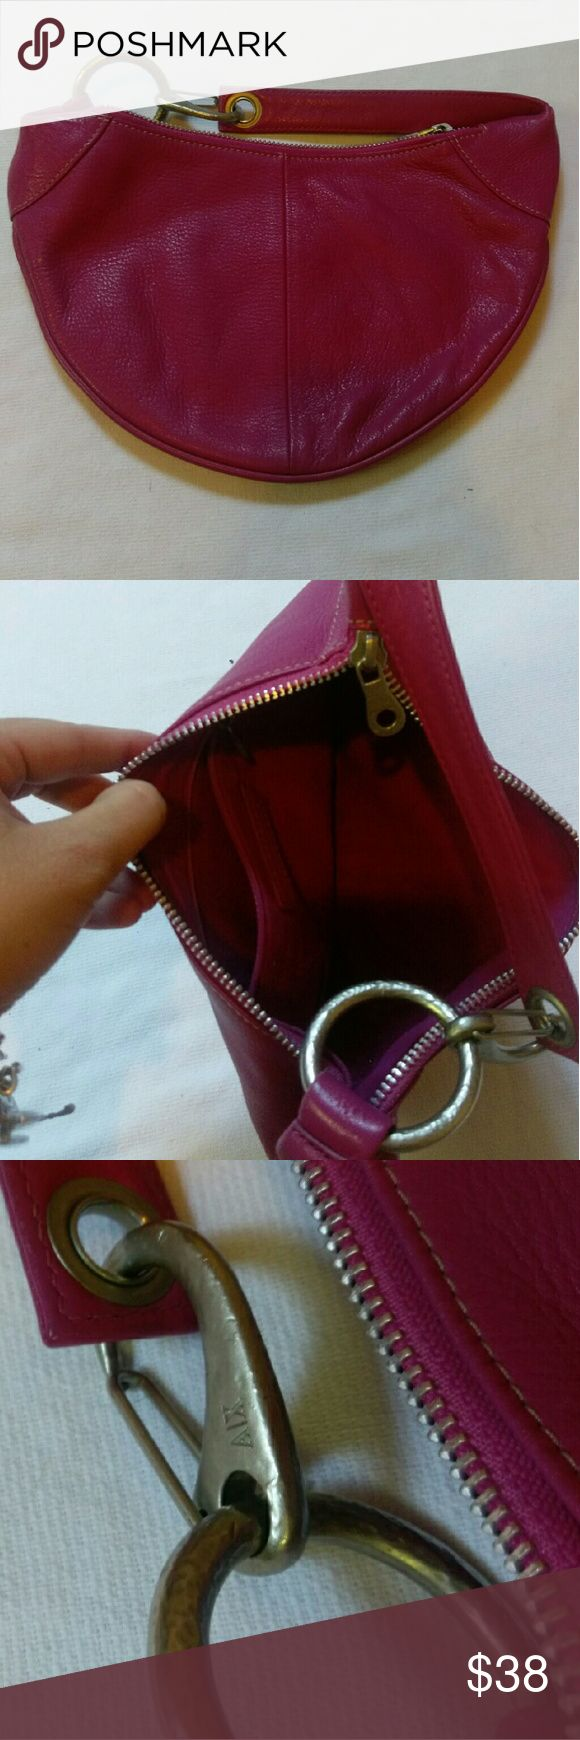 Armani Exchange Purse Authentic Armani Exchange  Pink Leather  Silver Zipper and details Armani Exchange Bags Mini Bags